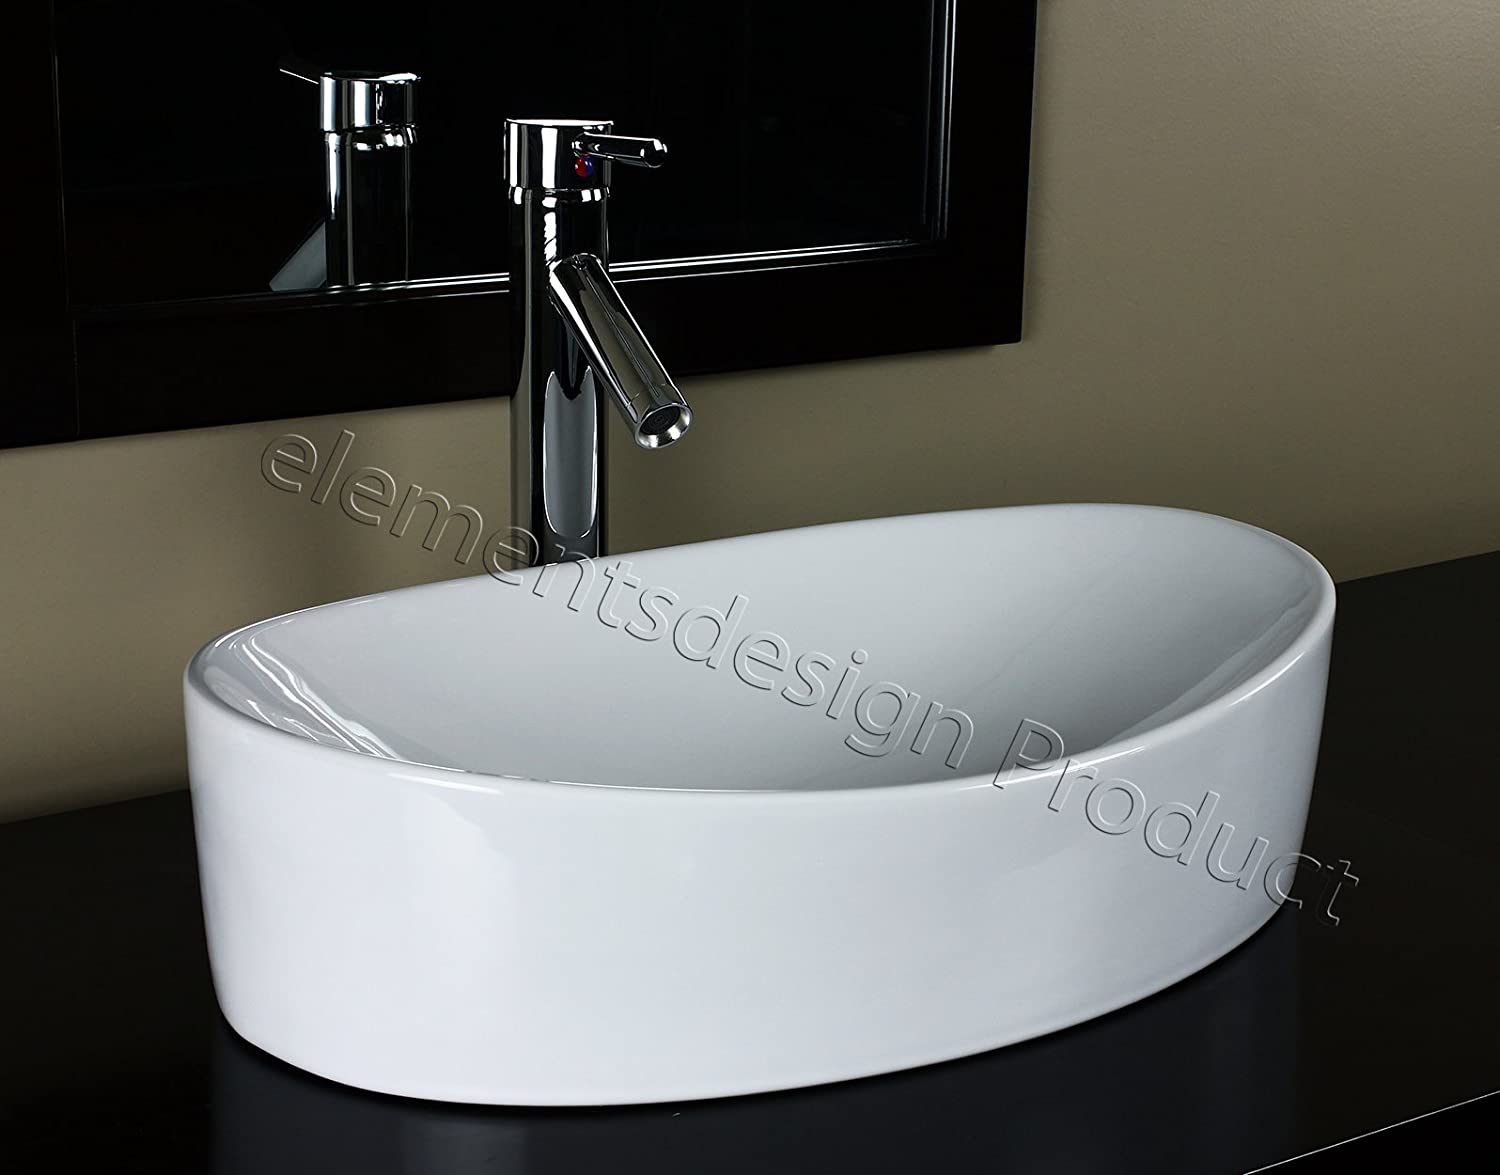 Bathroom Ceramic Vessel Sink 7756CD1 With Chrome Faucet Drain